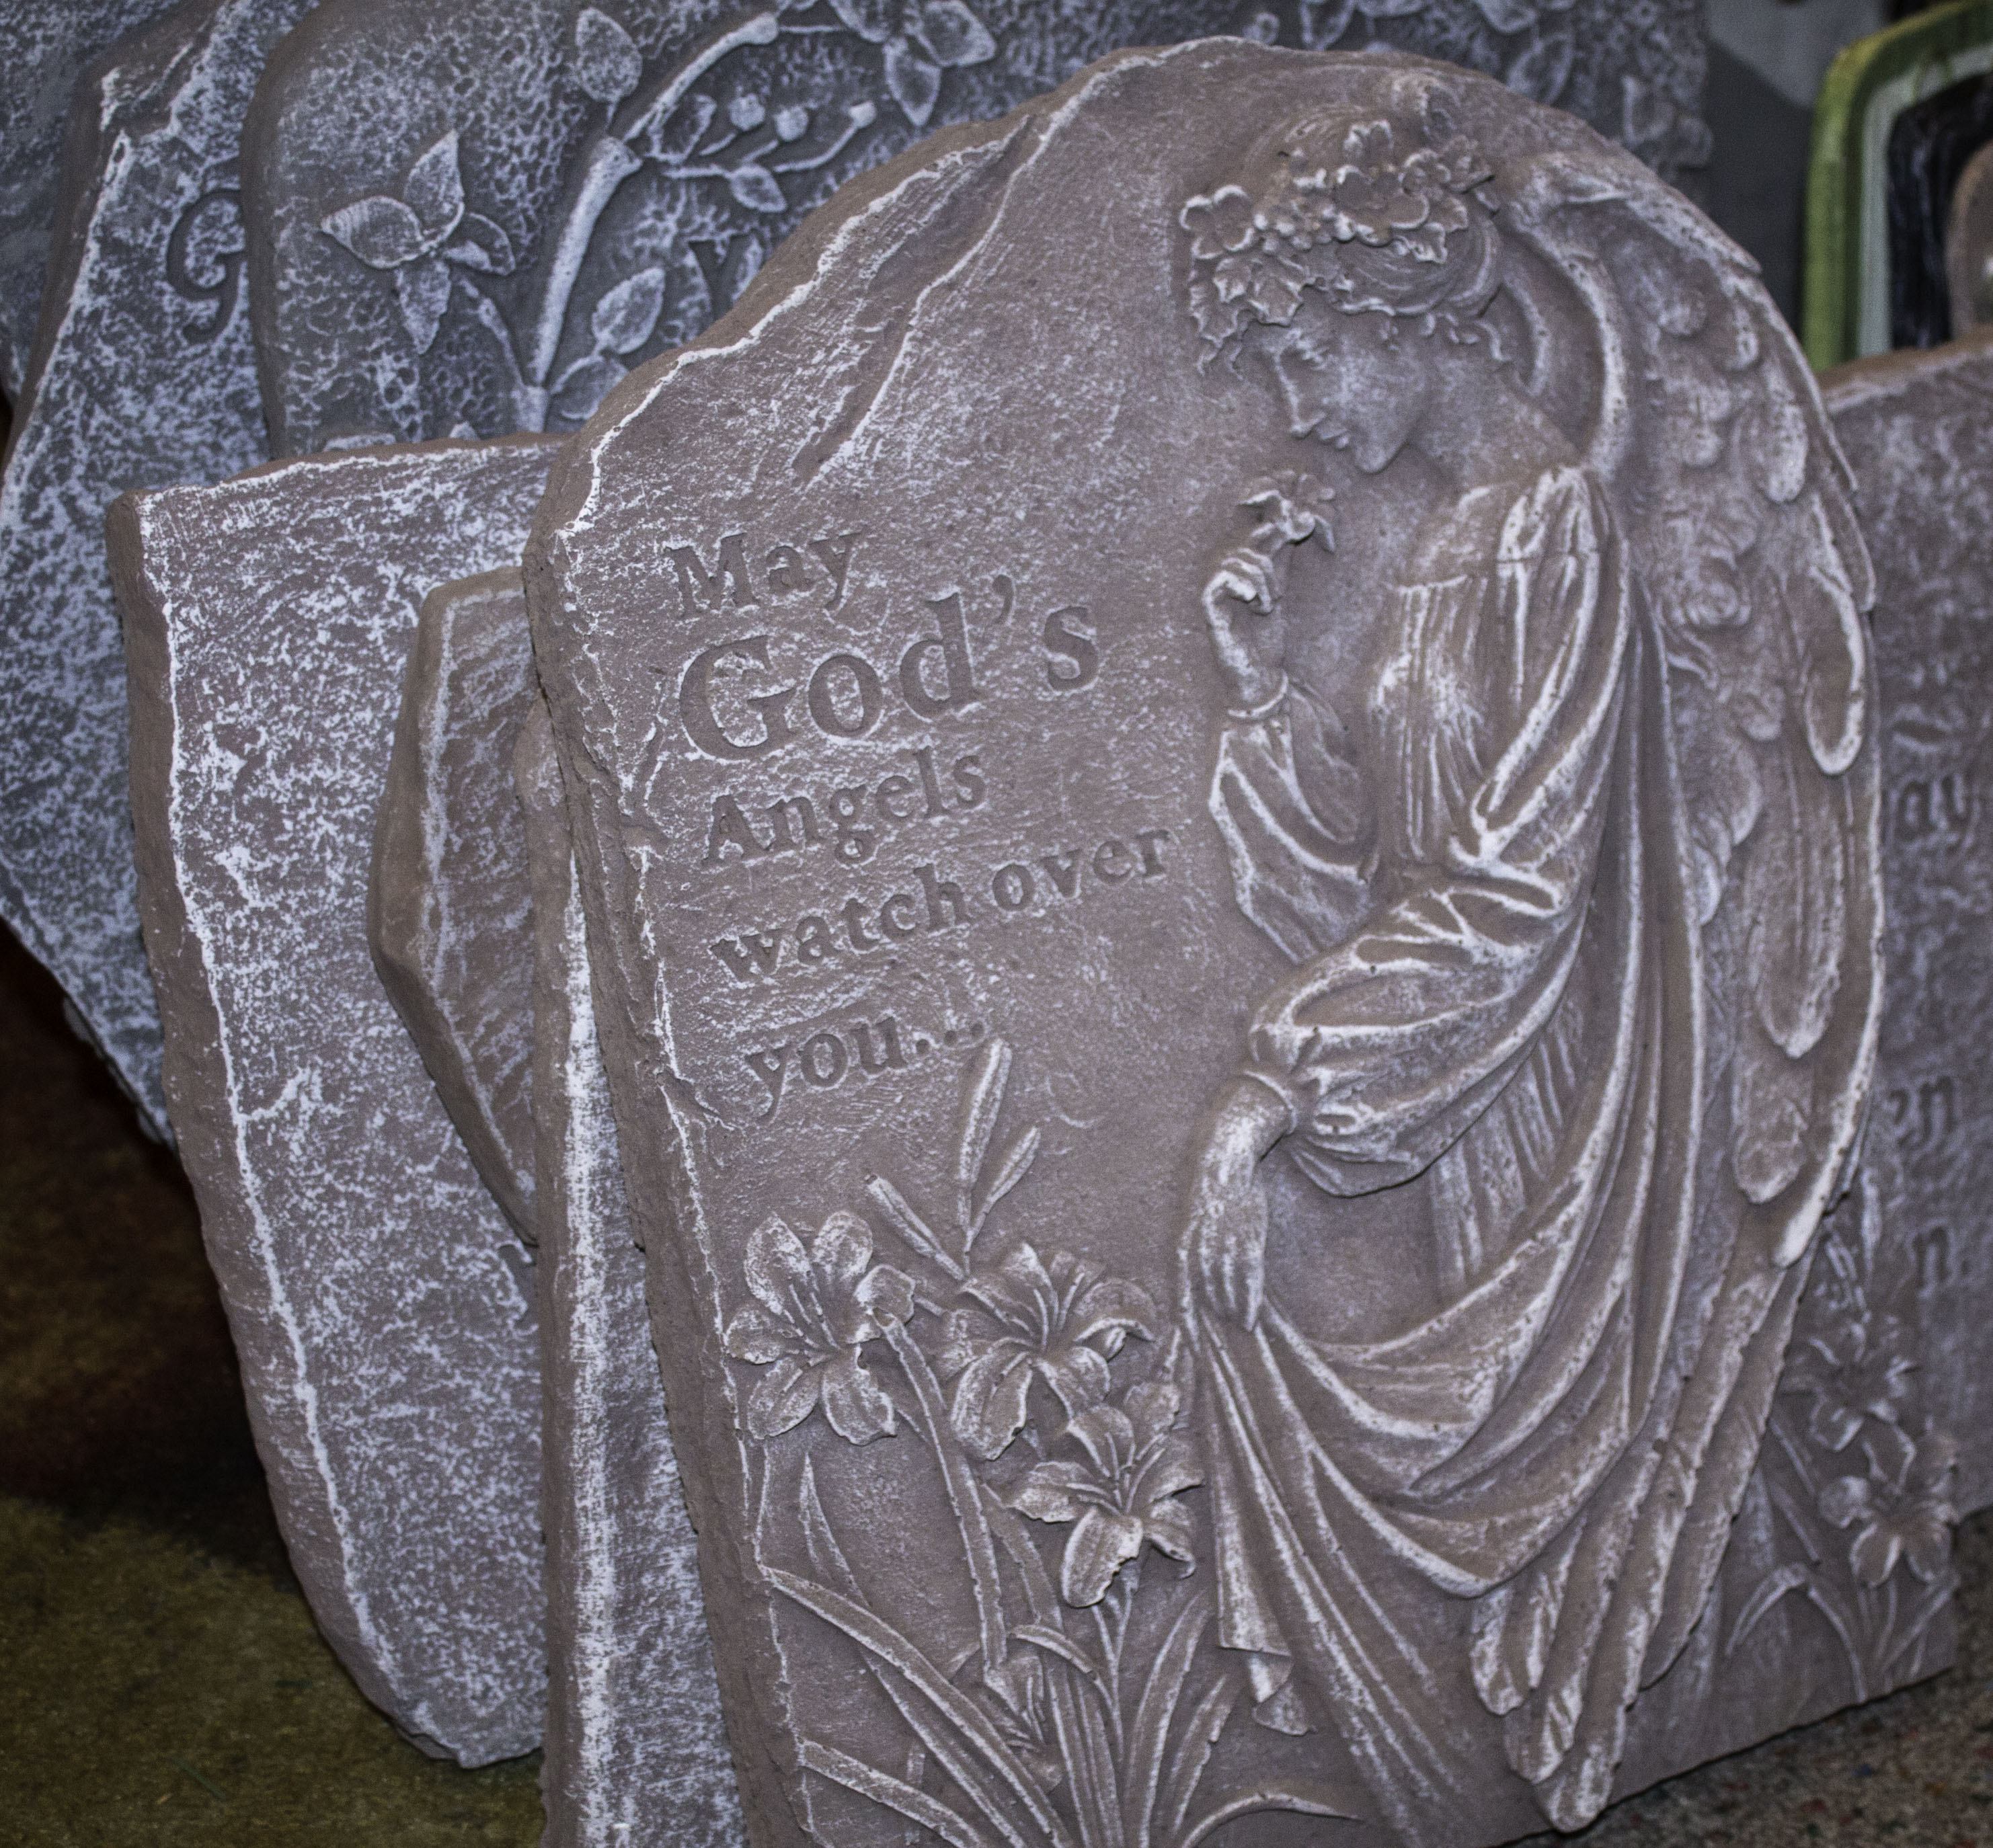 Stones or plaques